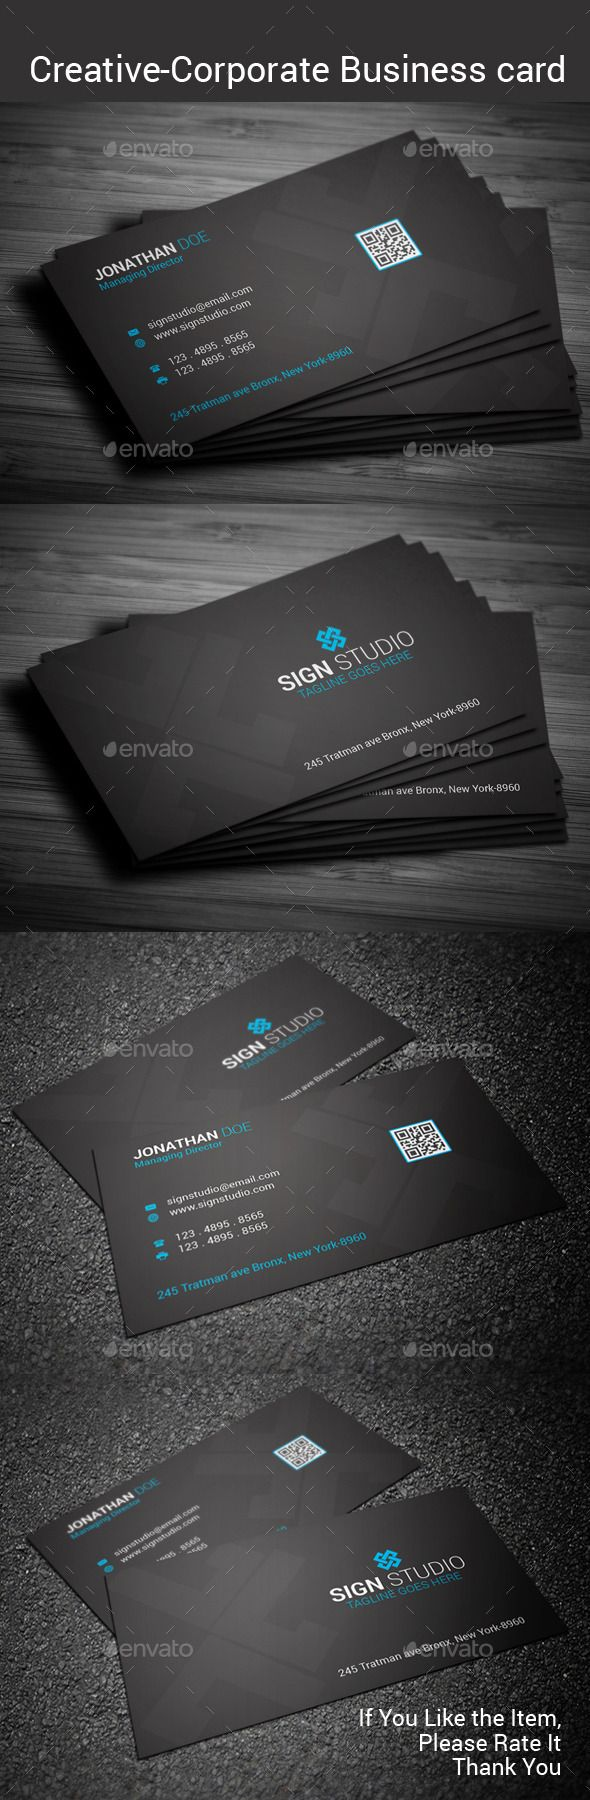 Creative business card business cards photoshop cs5 and adobe creative business card reheart Gallery